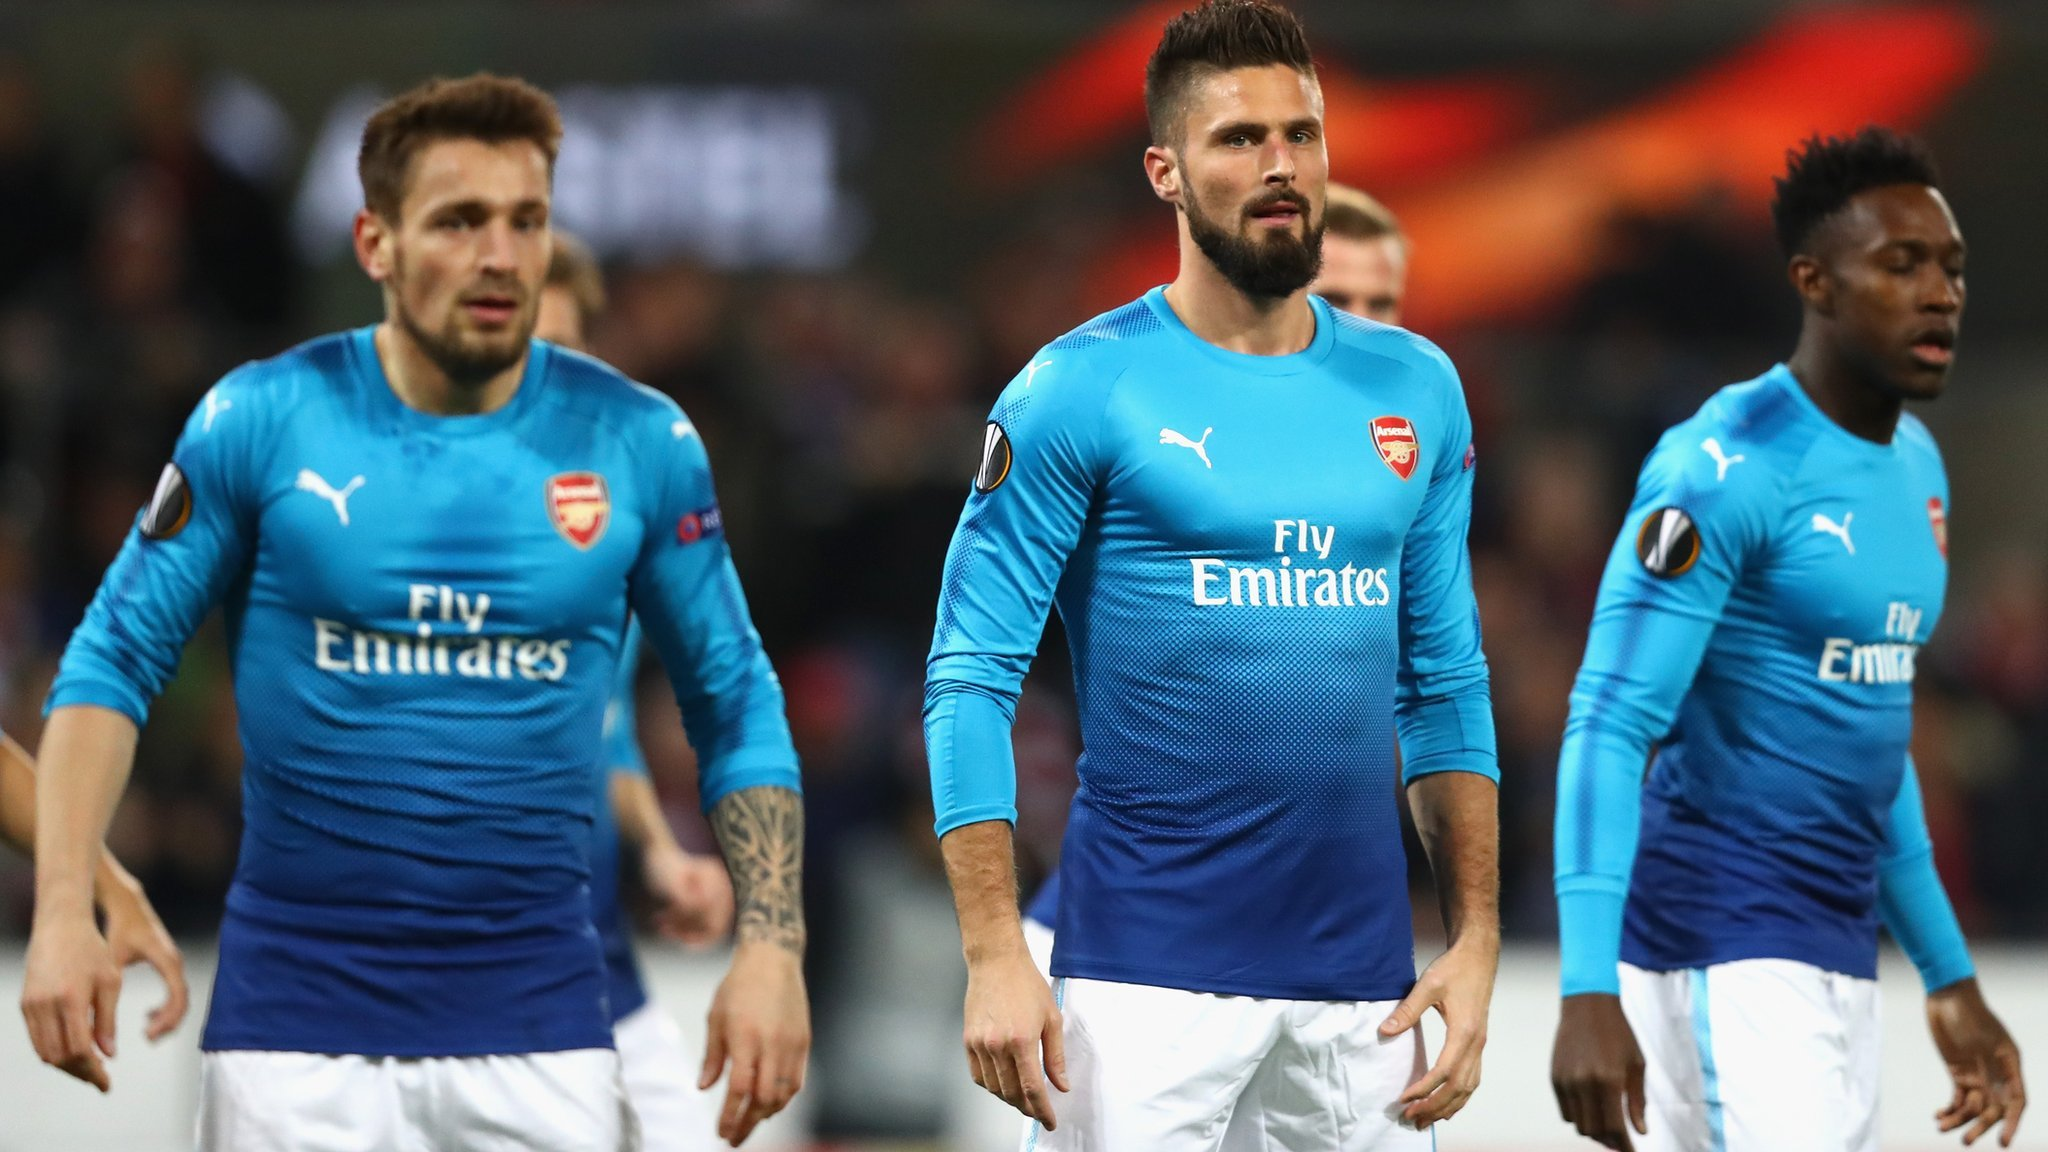 Arsenal 'get the job done' despite defeat in Cologne